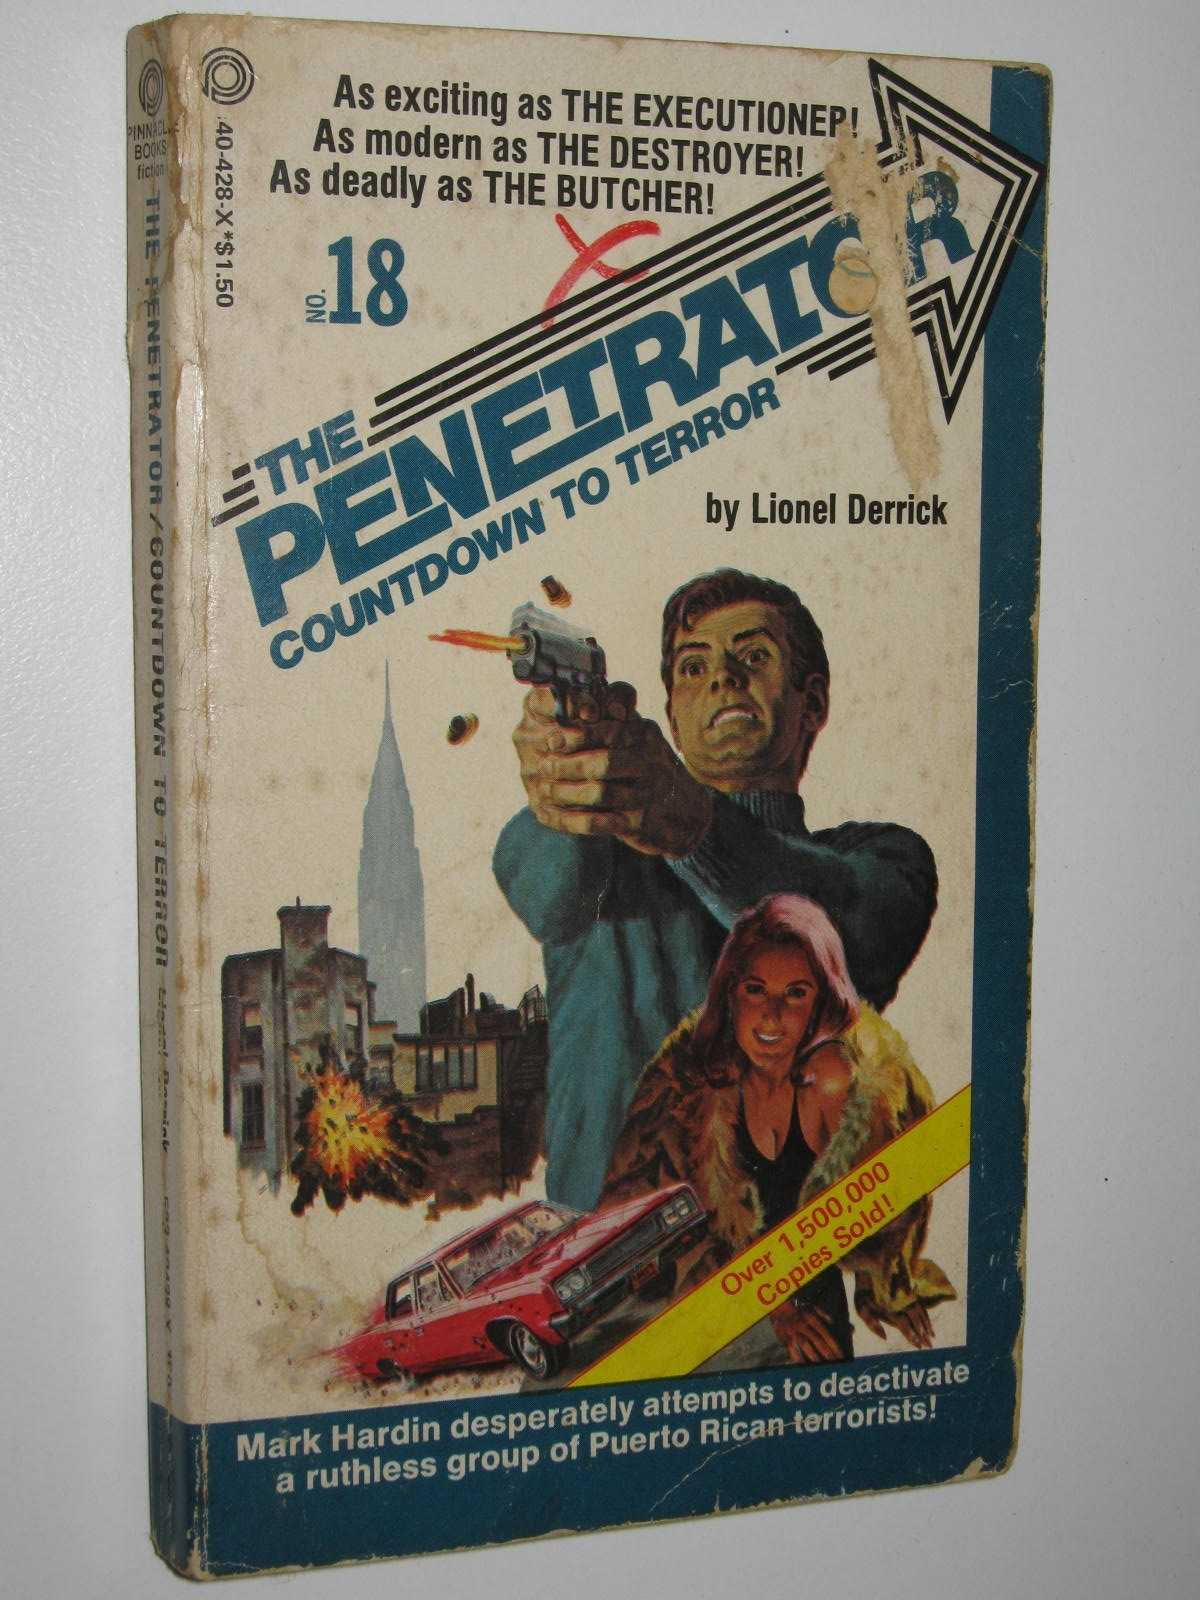 Image for Countdown to Terror - The Penetrator Series #18